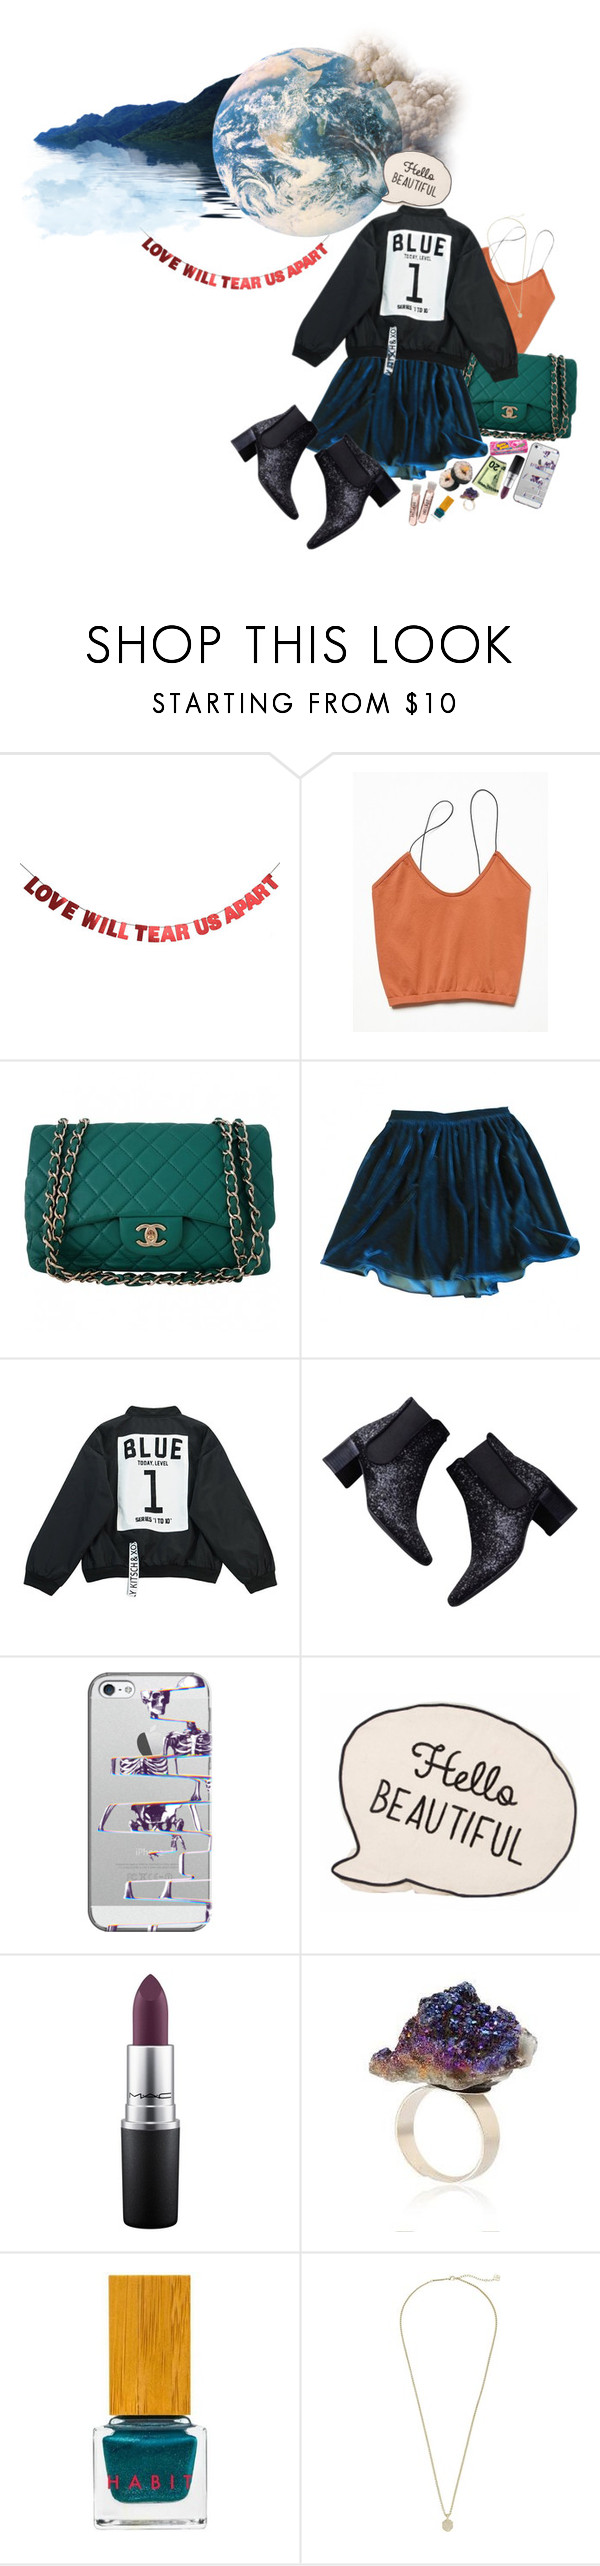 """""""Out of The Blue"""" by lady-wednesday ❤ liked on Polyvore featuring WALL, Free People, Chanel, American Apparel, Chicnova Fashion, Zara, Casetify, MAC Cosmetics, Habit Cosmetics and Kendra Scott"""